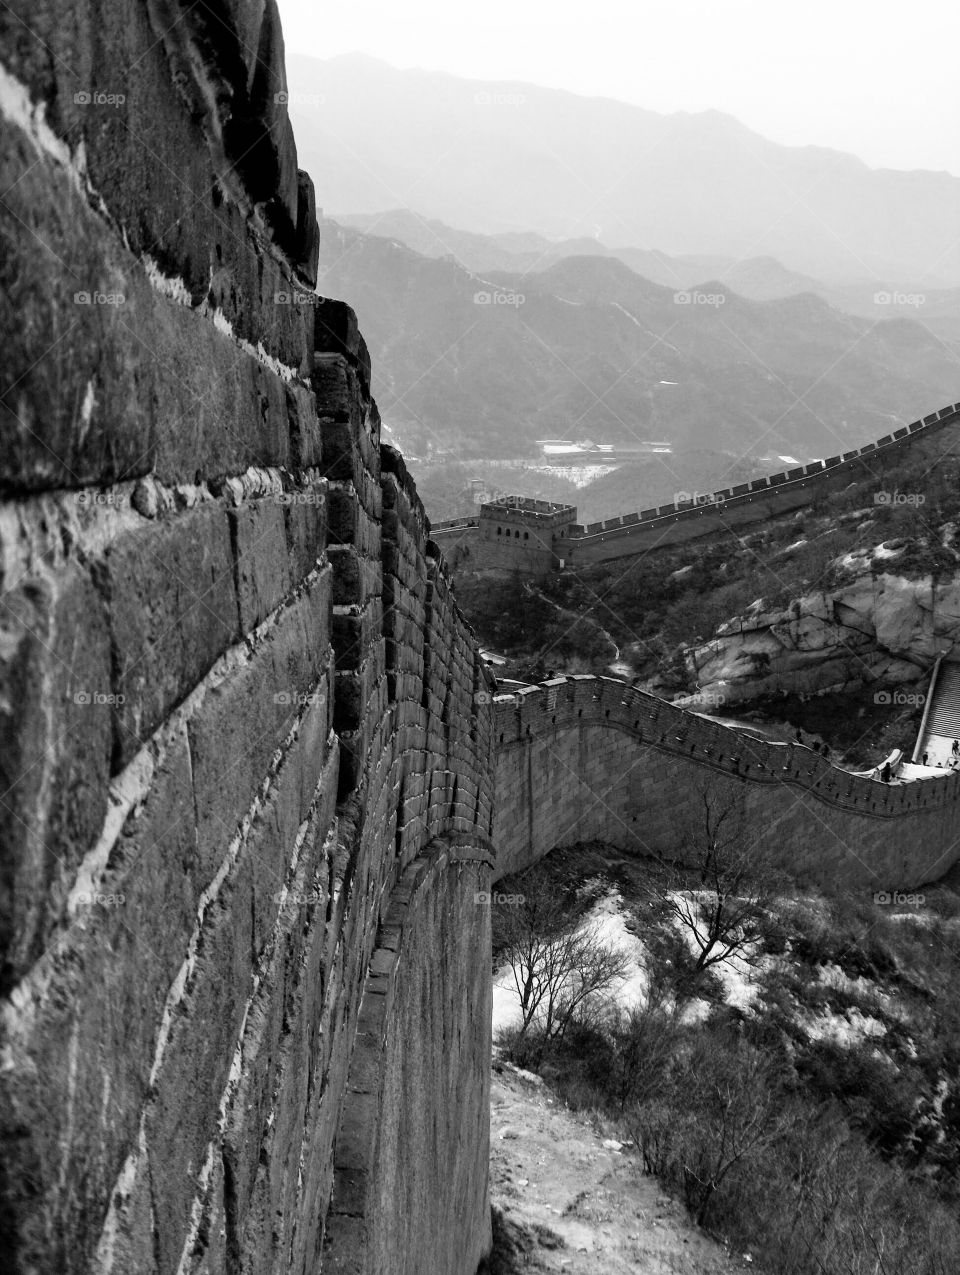 Touristy part of The Great Wall in Beijing